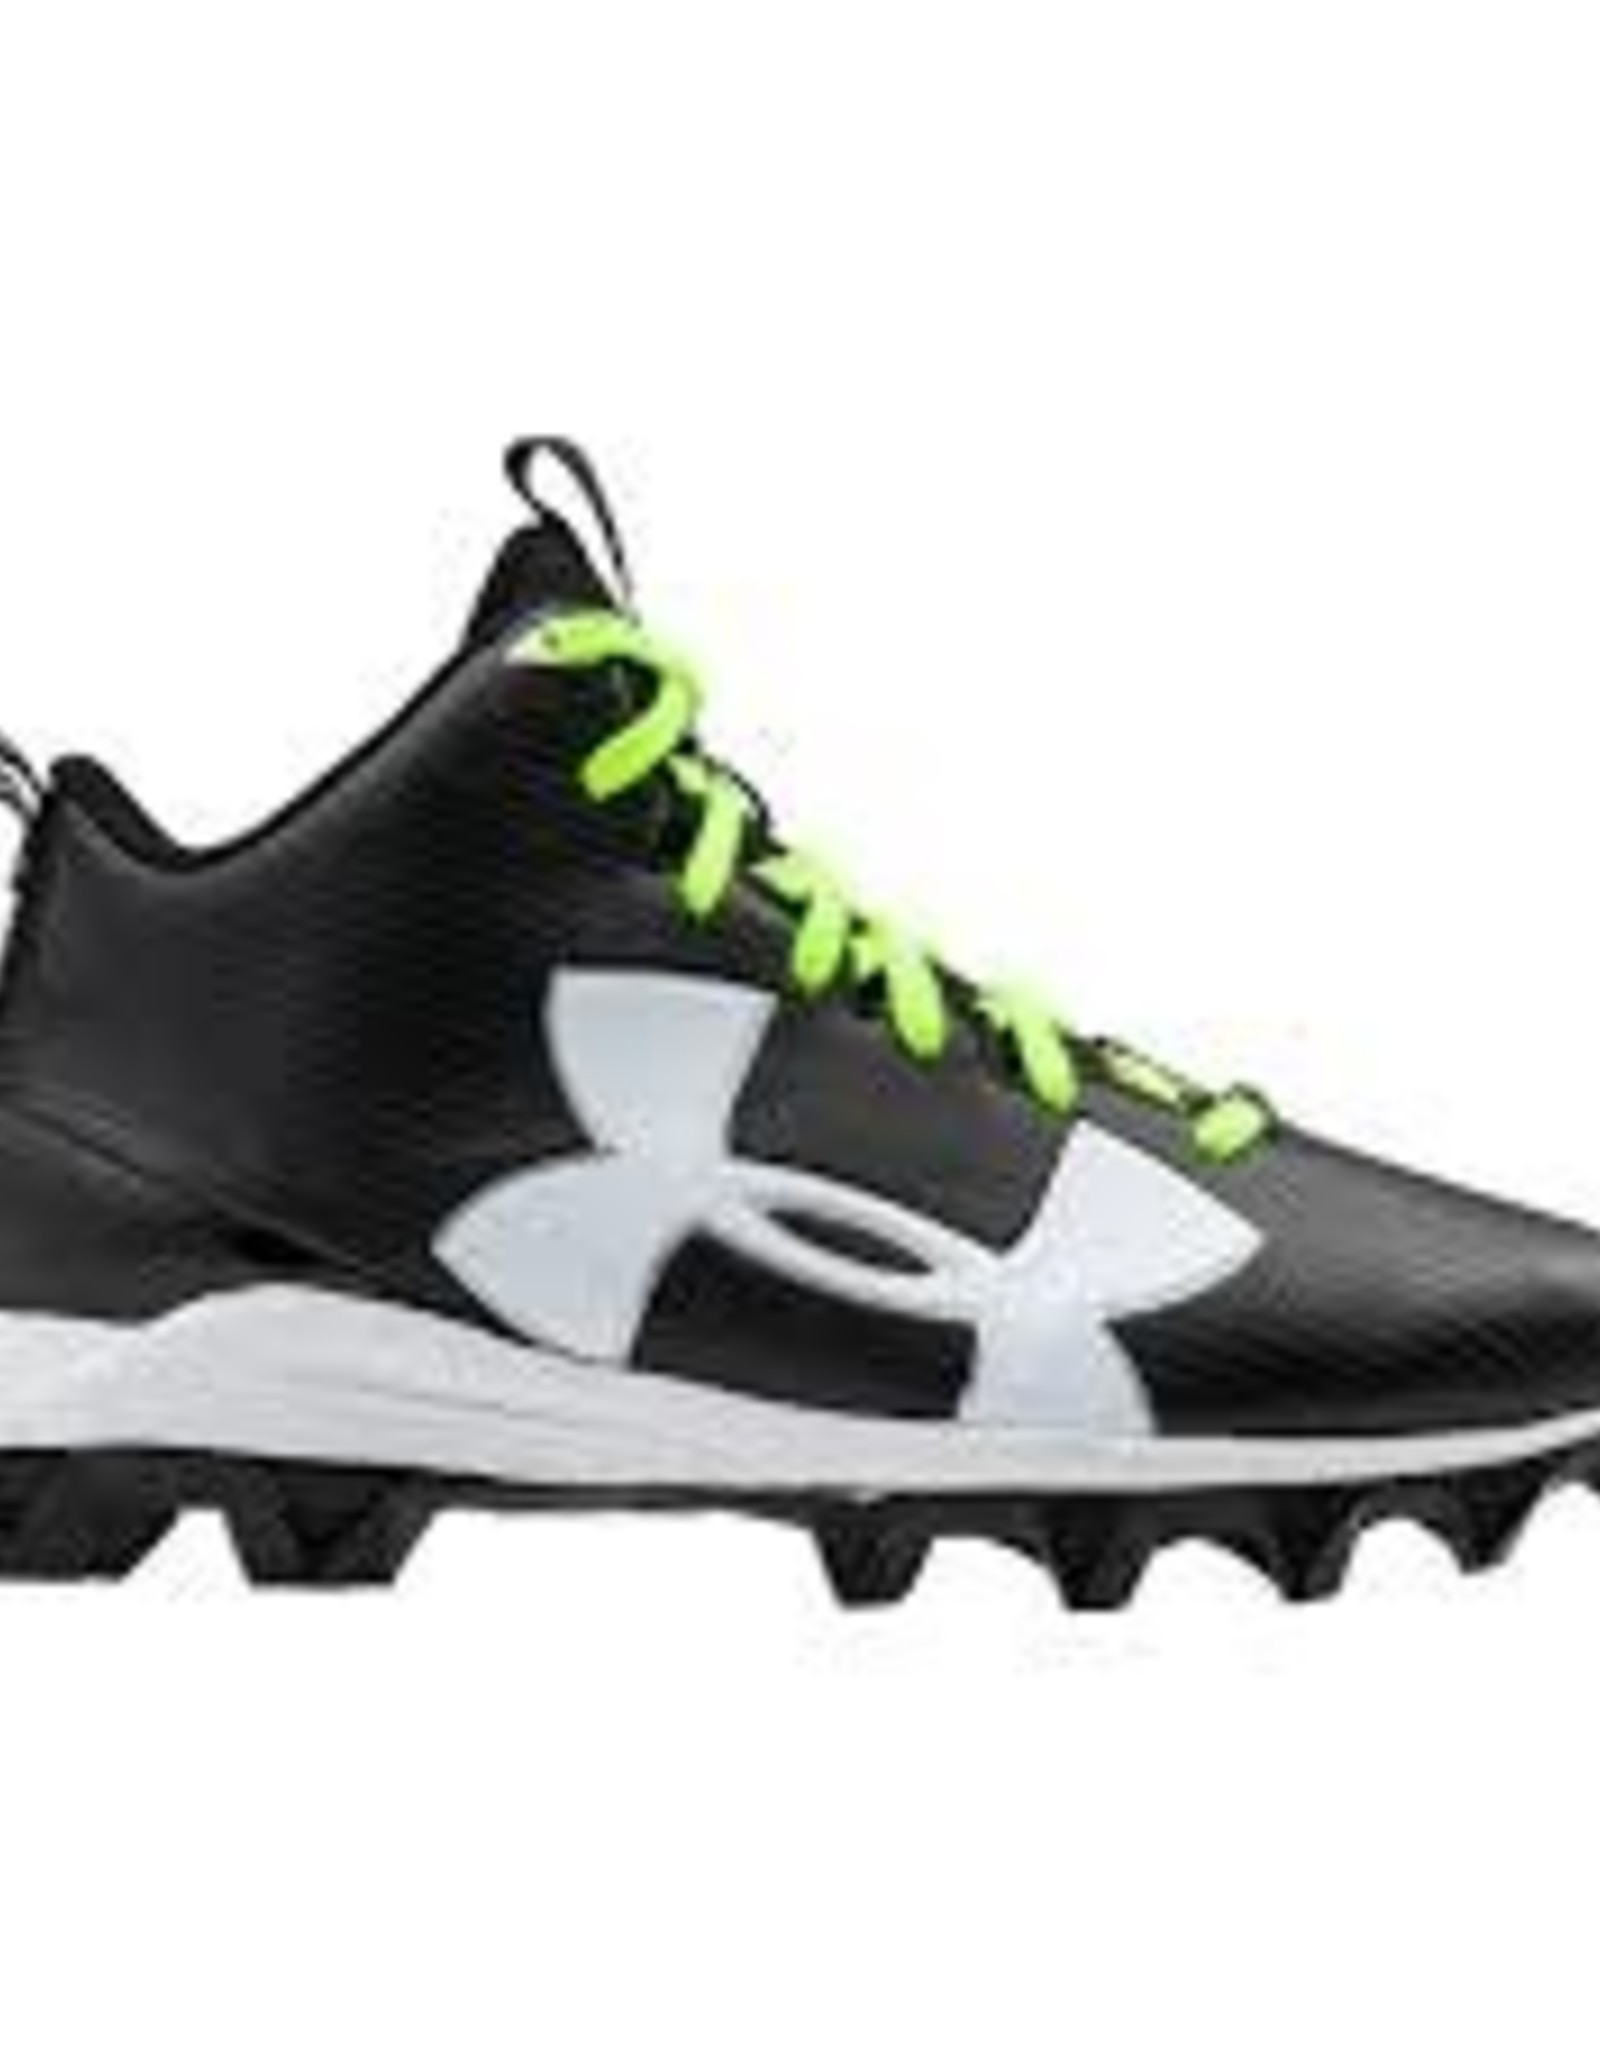 Under Armour SOULIER (3) FOOT UA CRUSHER RM